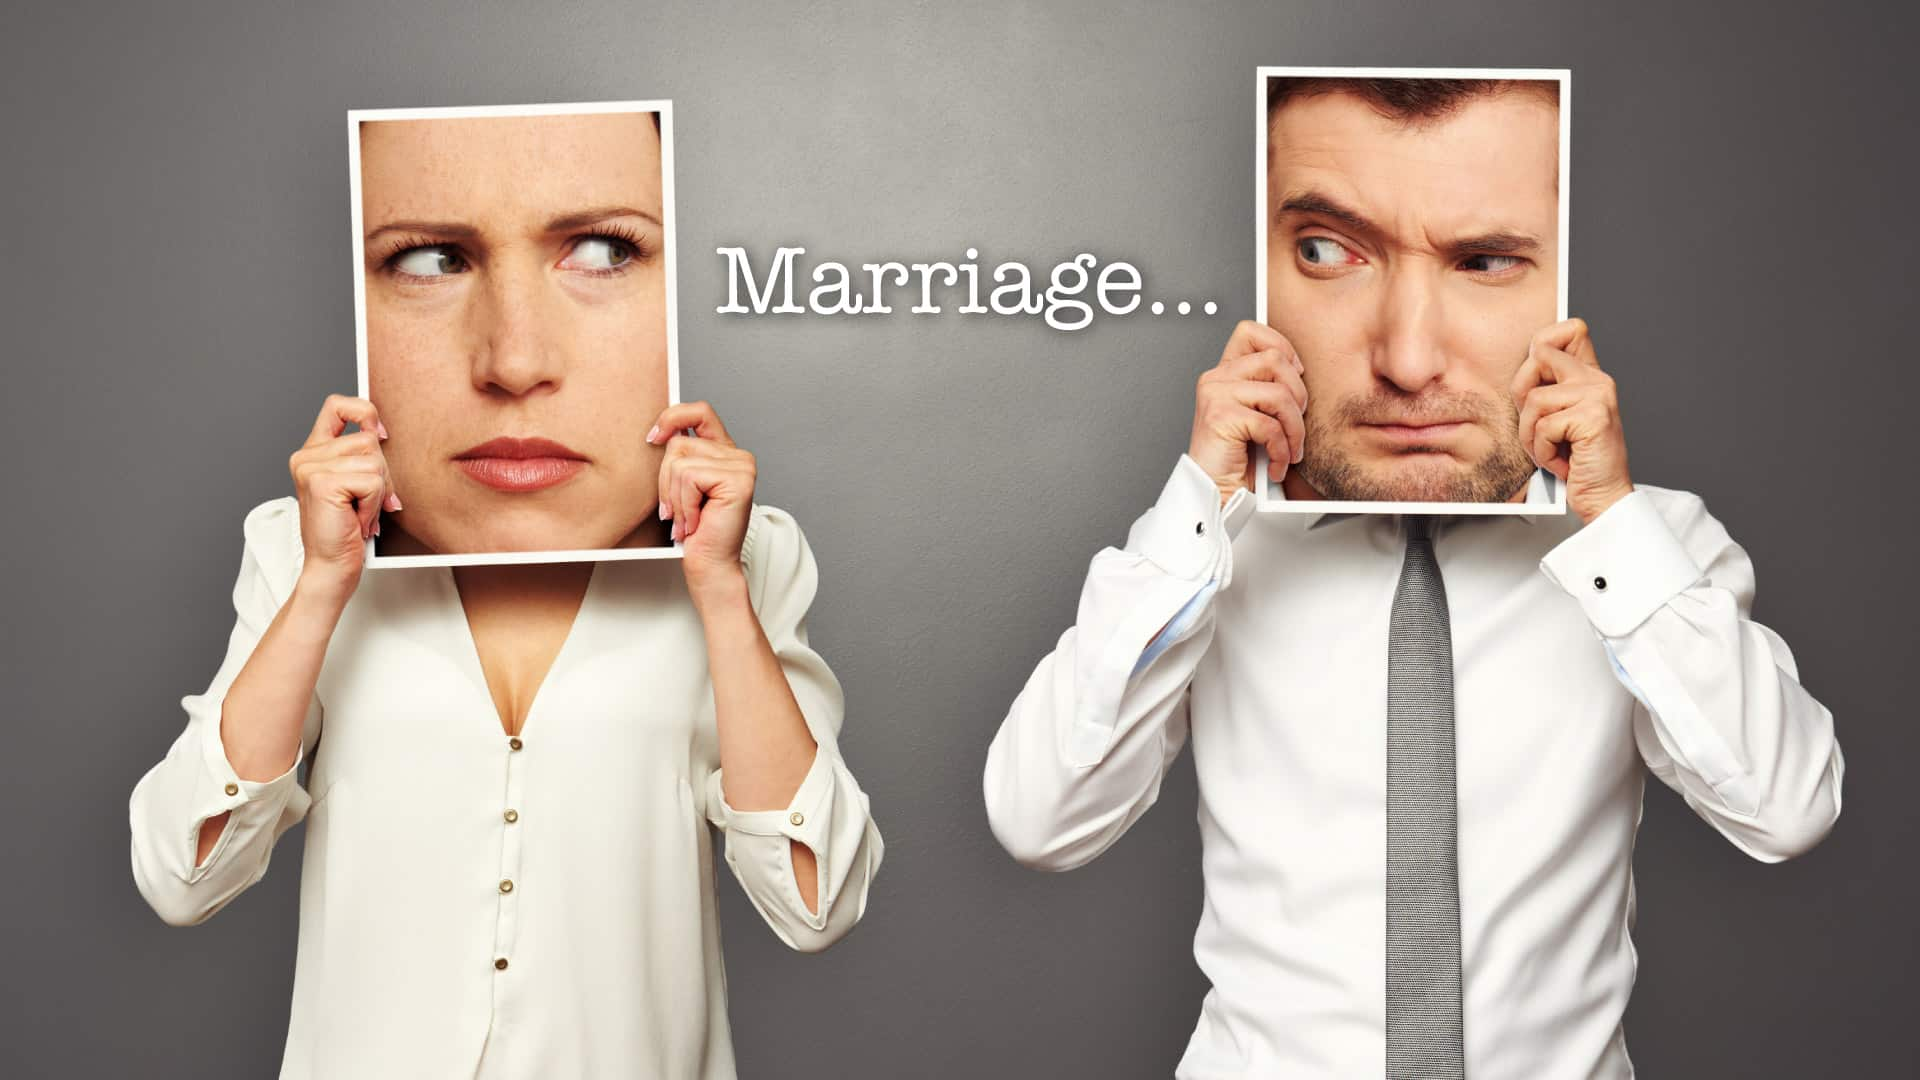 Marriage… graphic